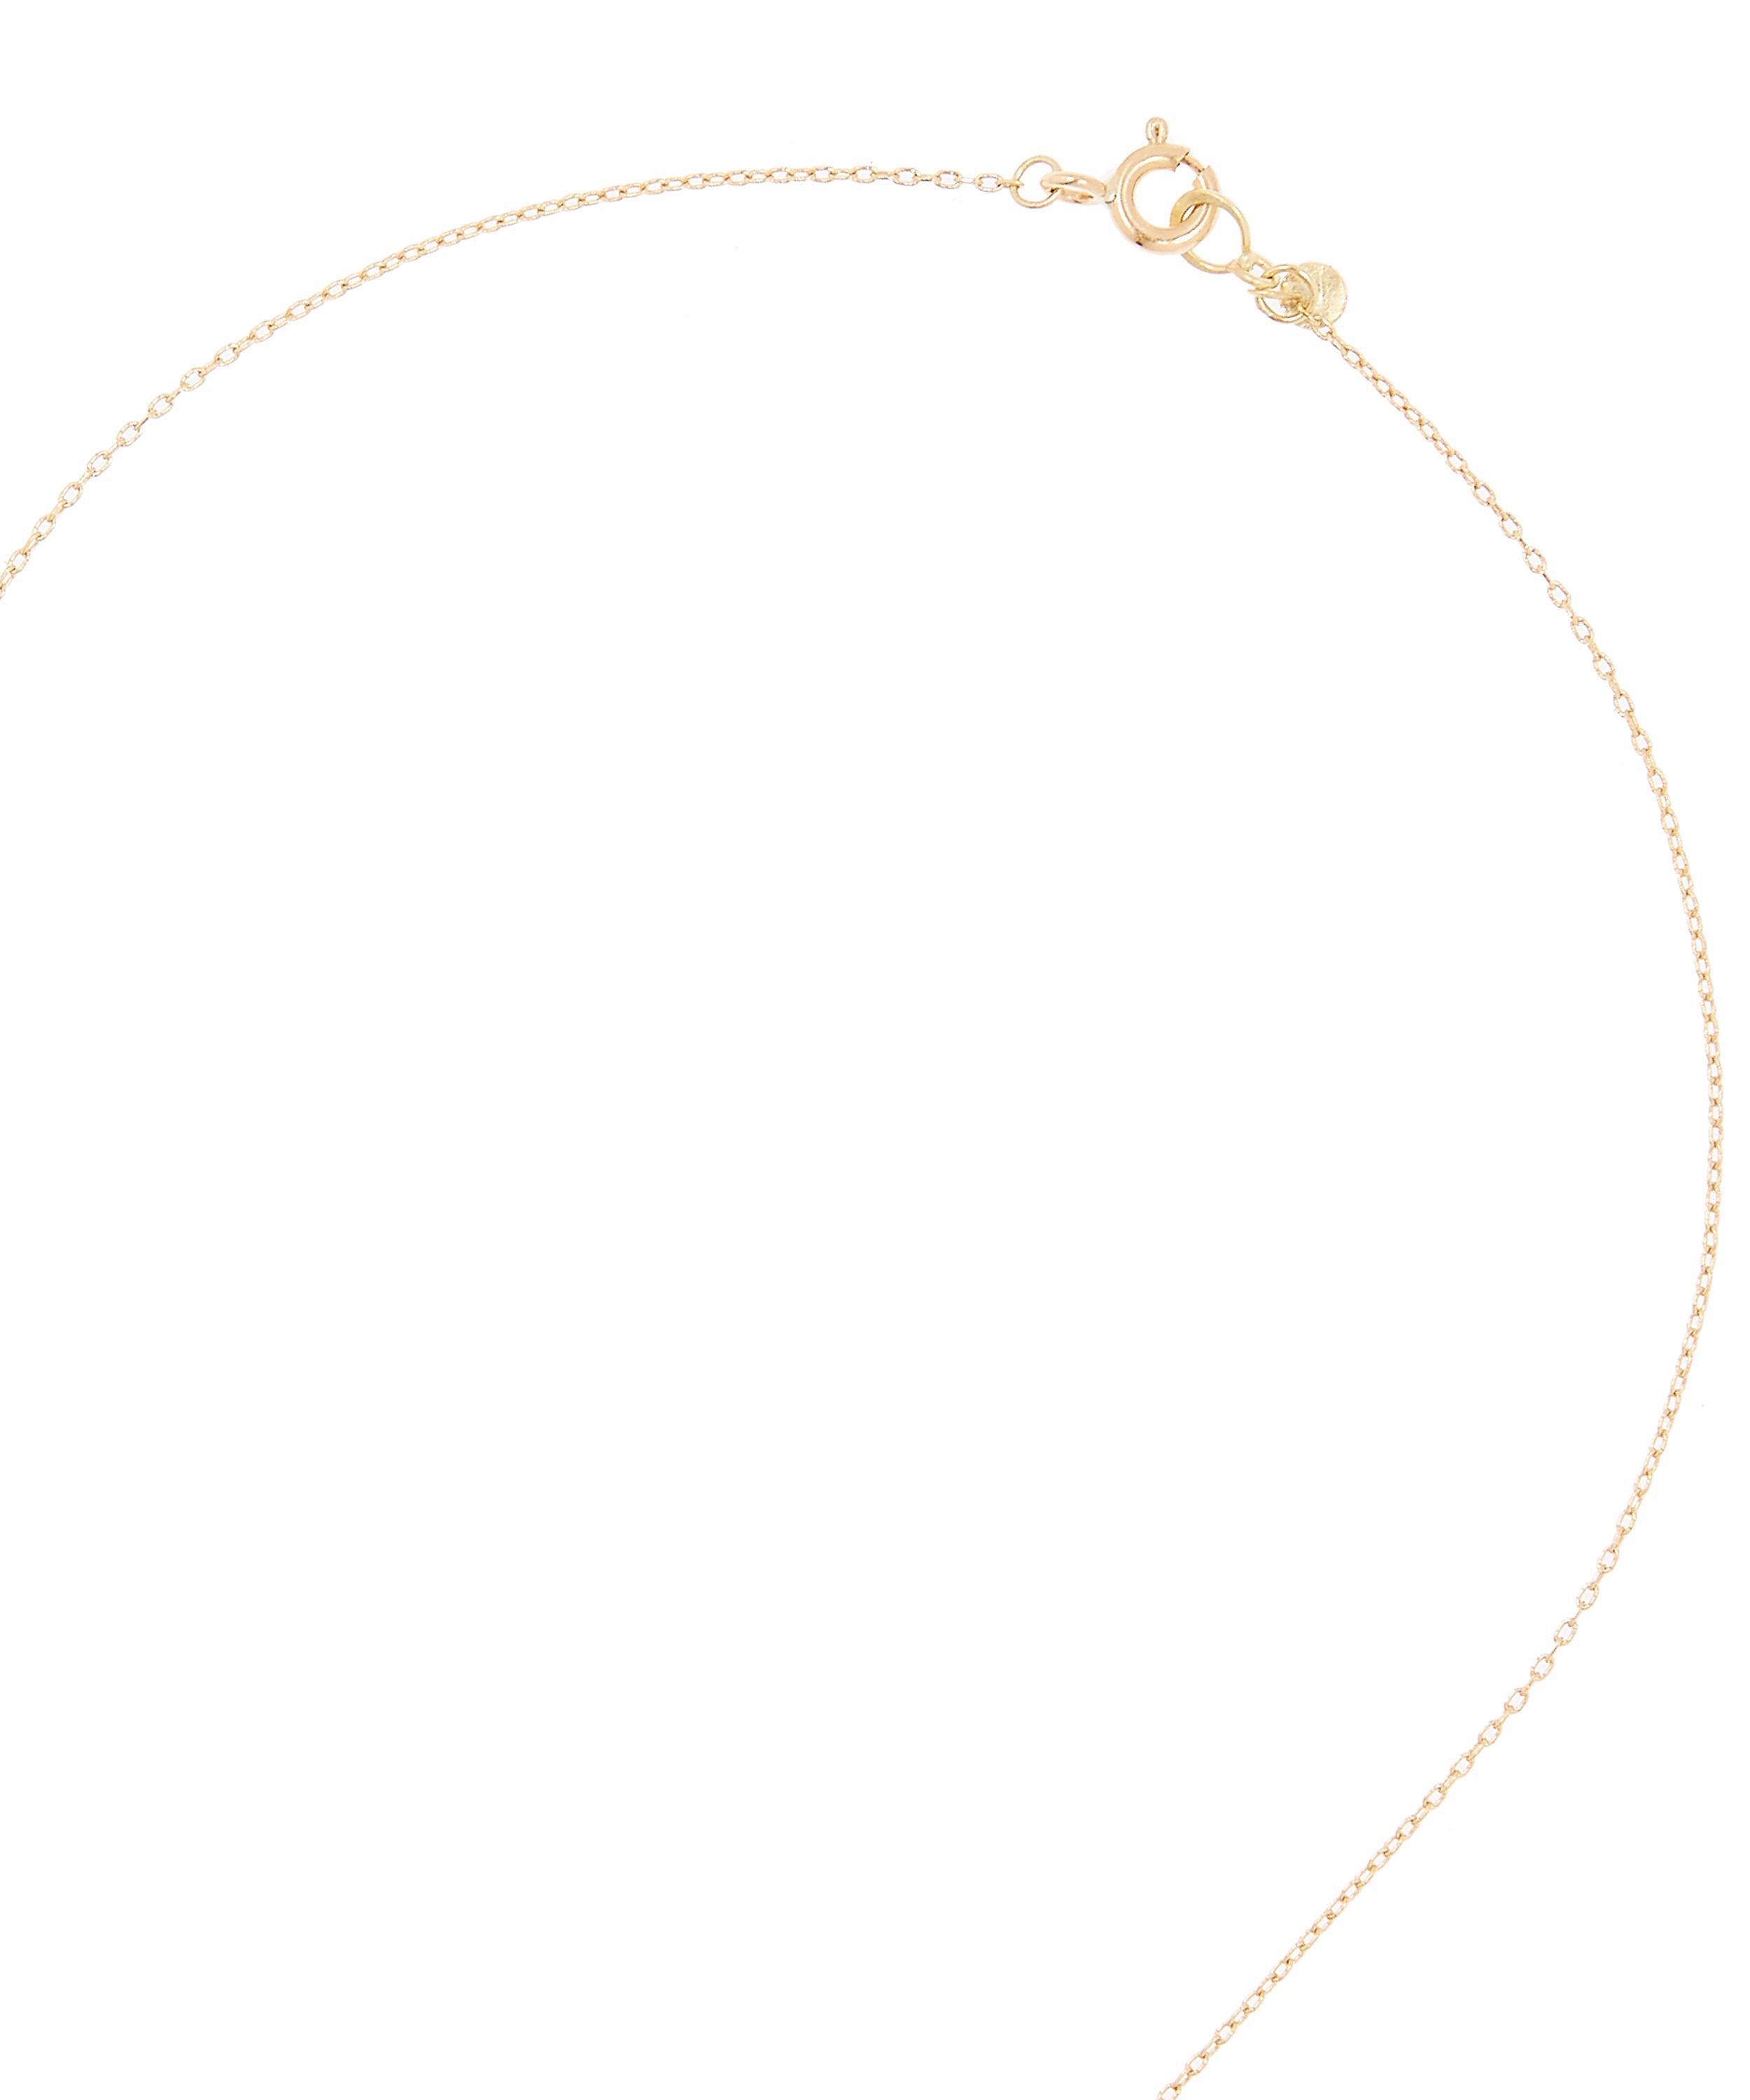 Sia Taylor Gold Sun Ray Necklace in Metallic